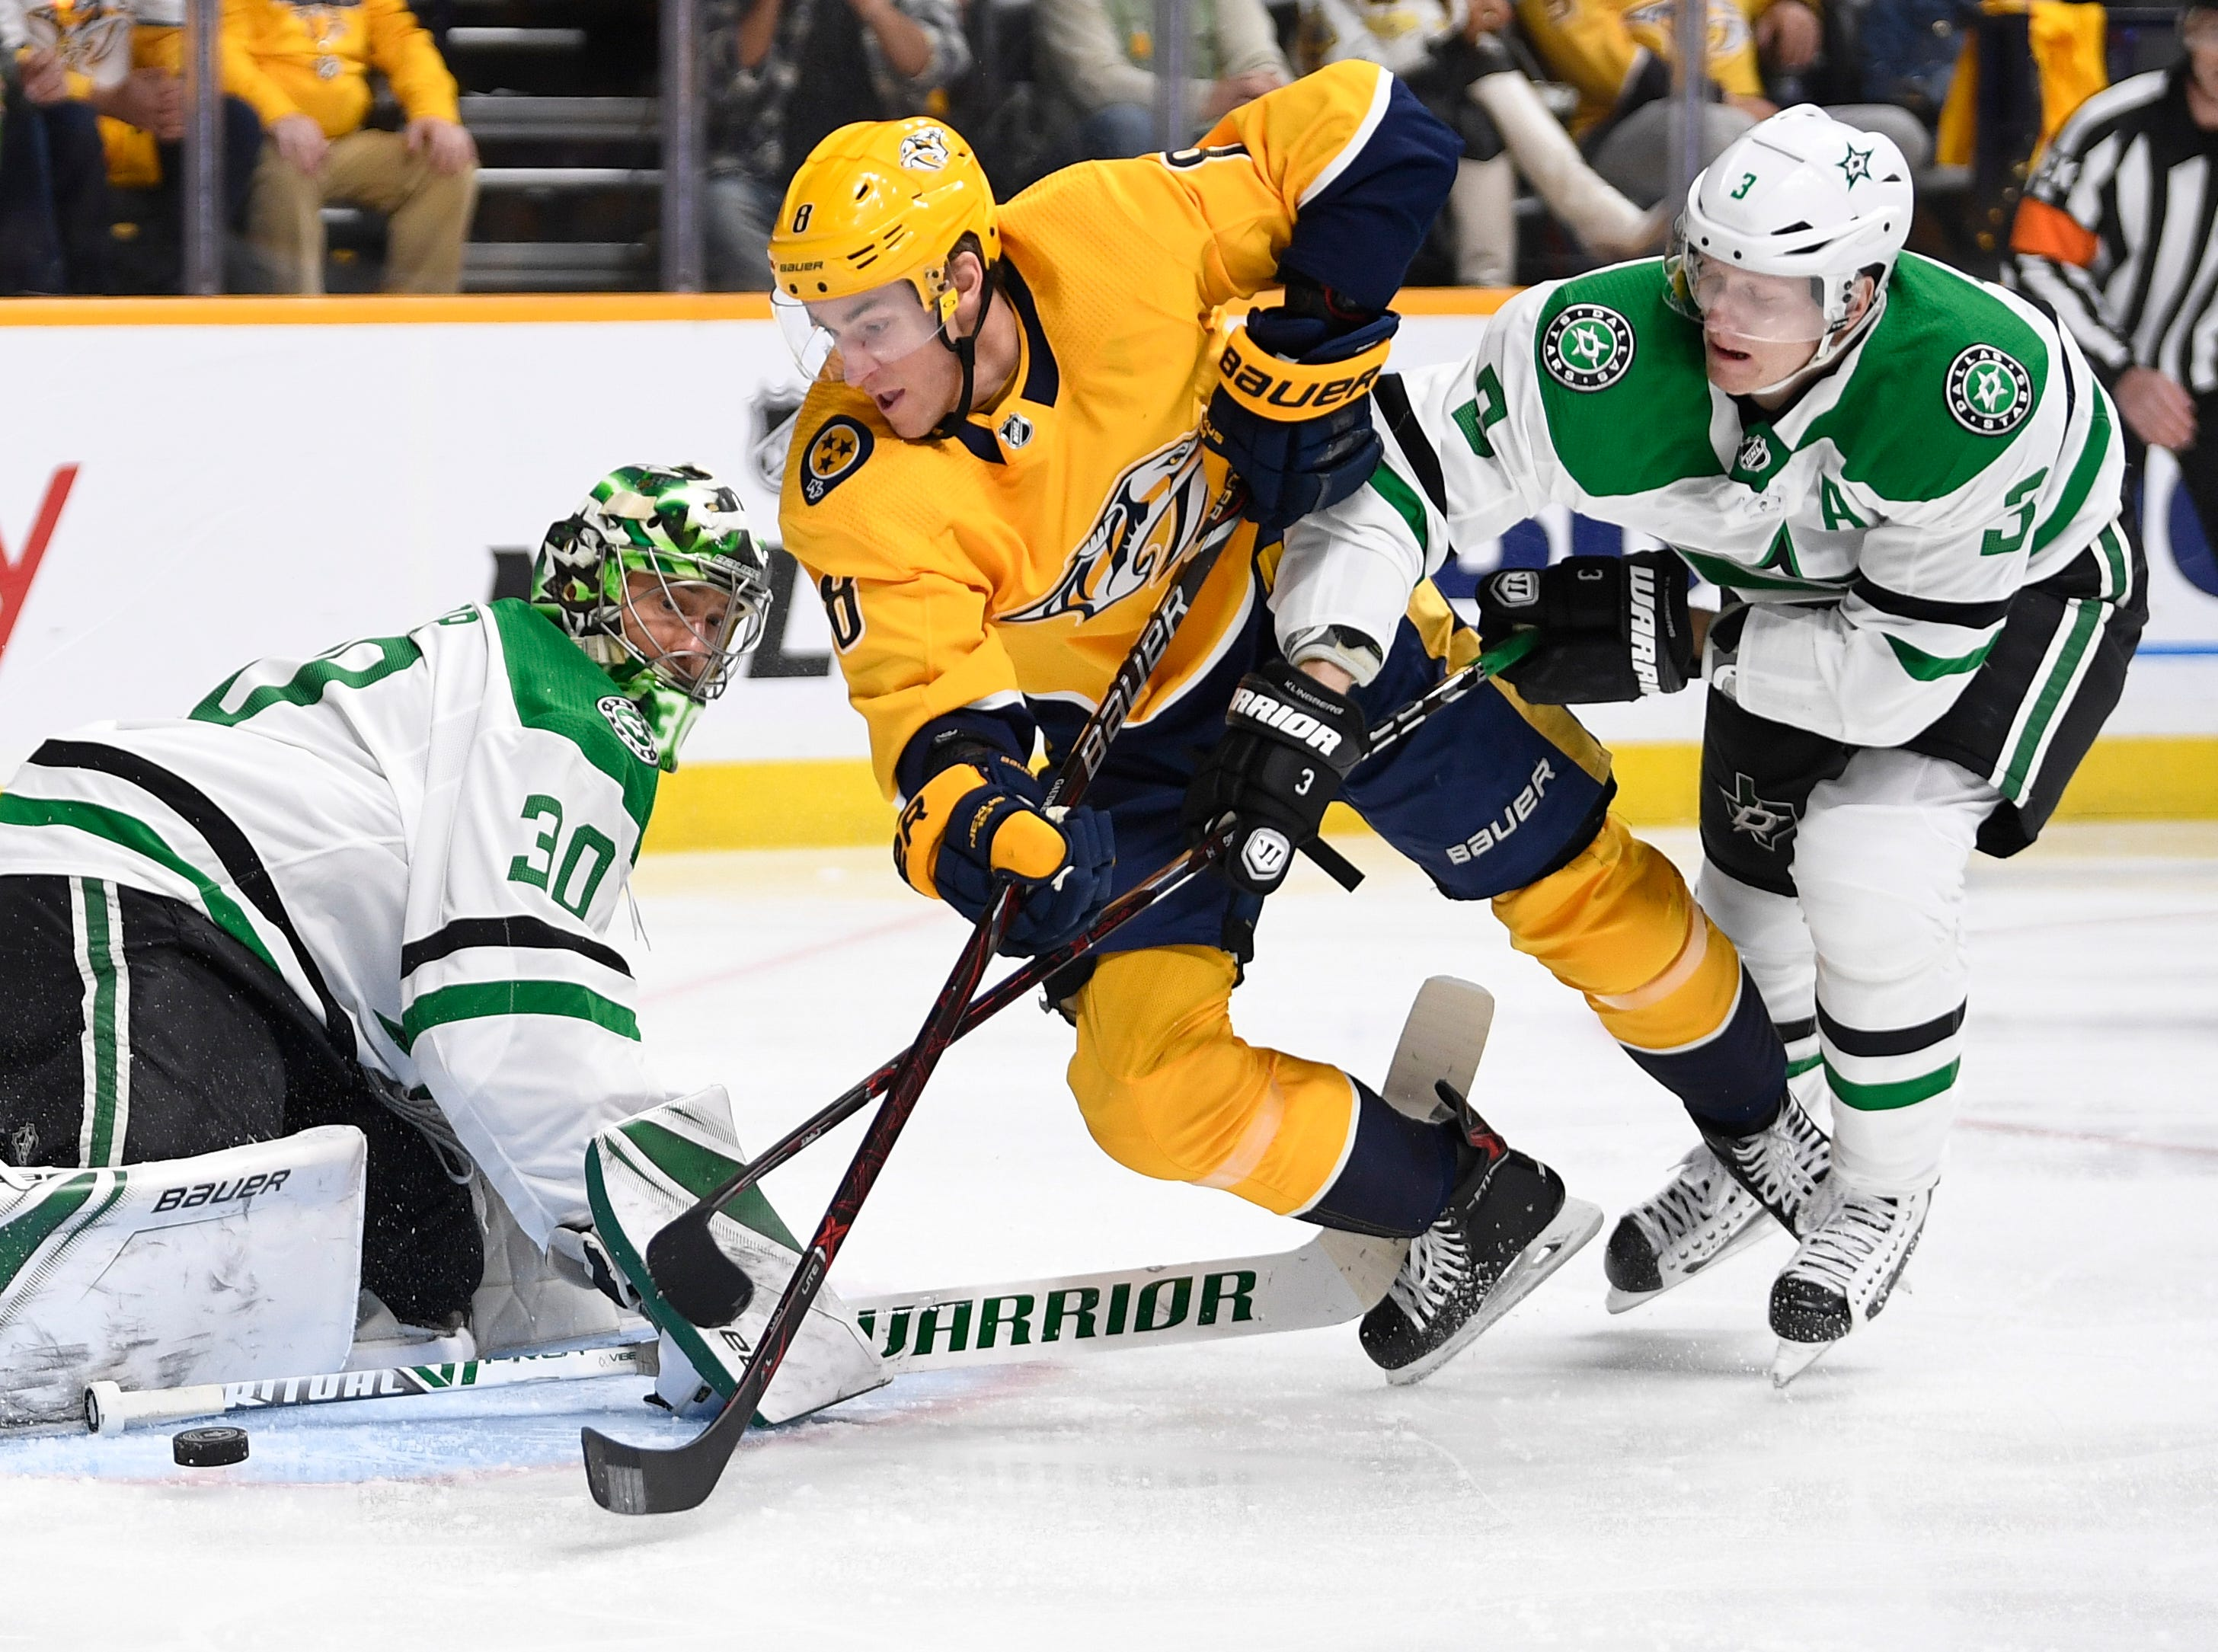 Nashville Predators center Kyle Turris (8) battles for the puck with Dallas Stars defenseman John Klingberg (3) in front of Dallas Stars goaltender Ben Bishop (30) during the first period of the divisional semifinal game at Bridgestone Arena in Nashville, Tenn., Wednesday, April 10, 2019.